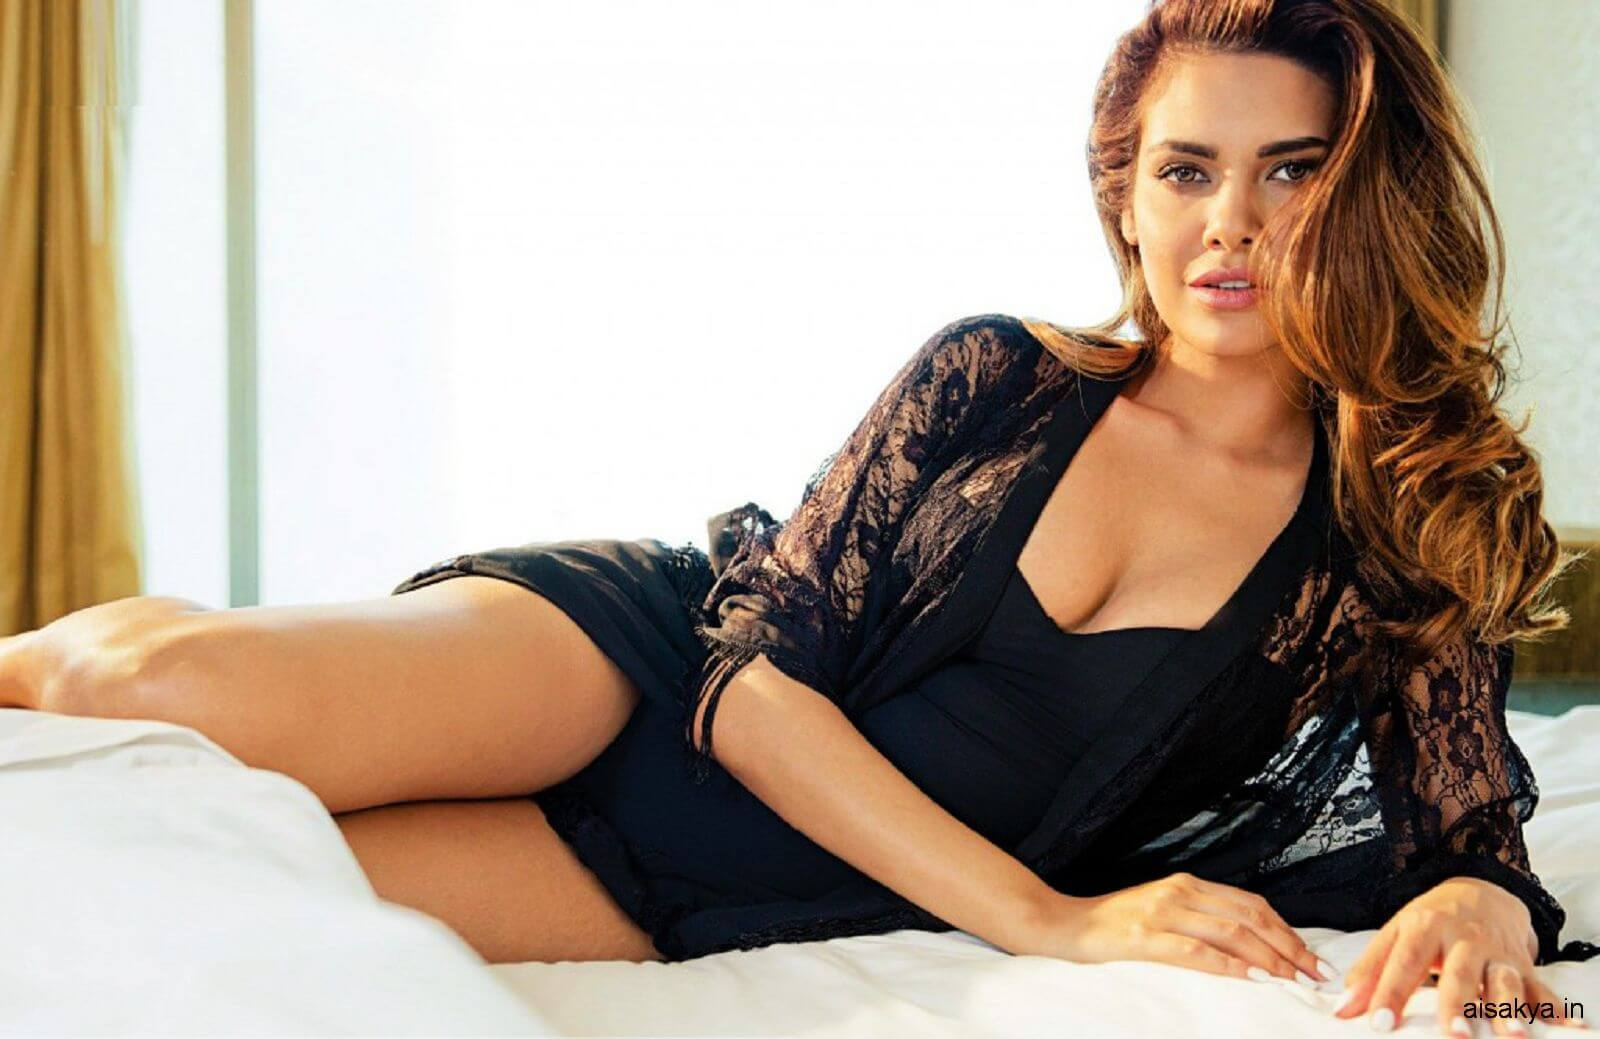 Esha Gupta Images(photos), Age, Height, Net Worth, Date Of Birth, Family, Biography, Son, Marriage, Boyfriend, Education, Awards, Hairstyle, Instagram, Twitter, Facebook, Wiki, Imdb (35)